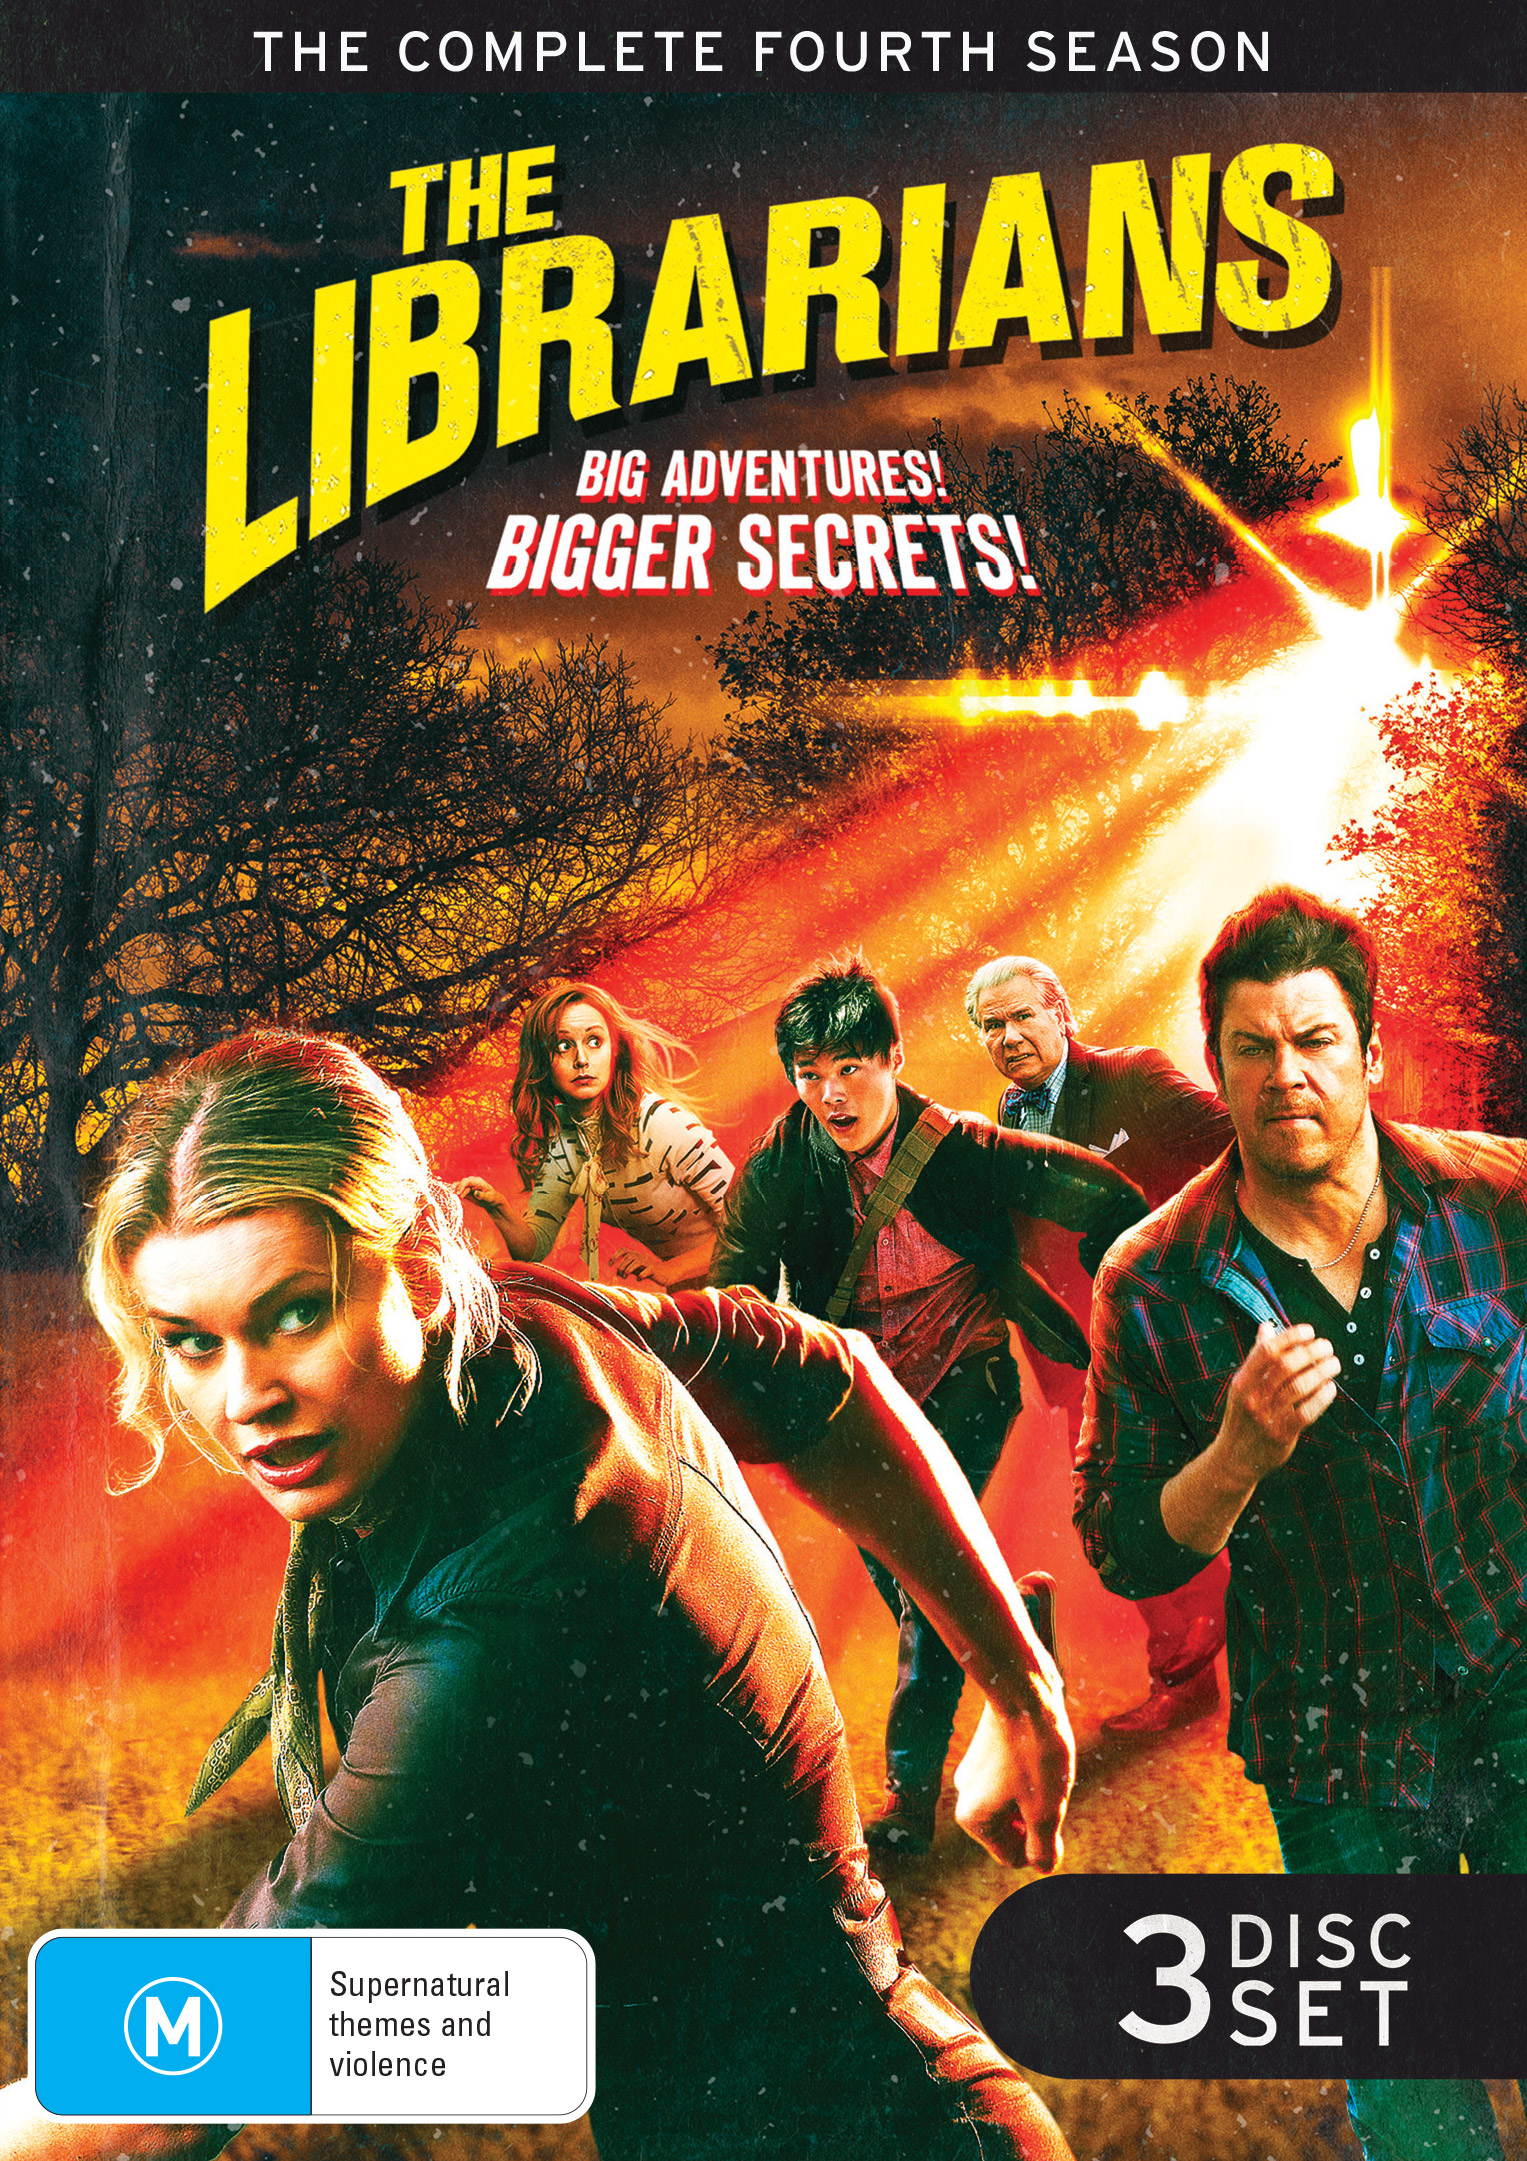 The Librarians, S4